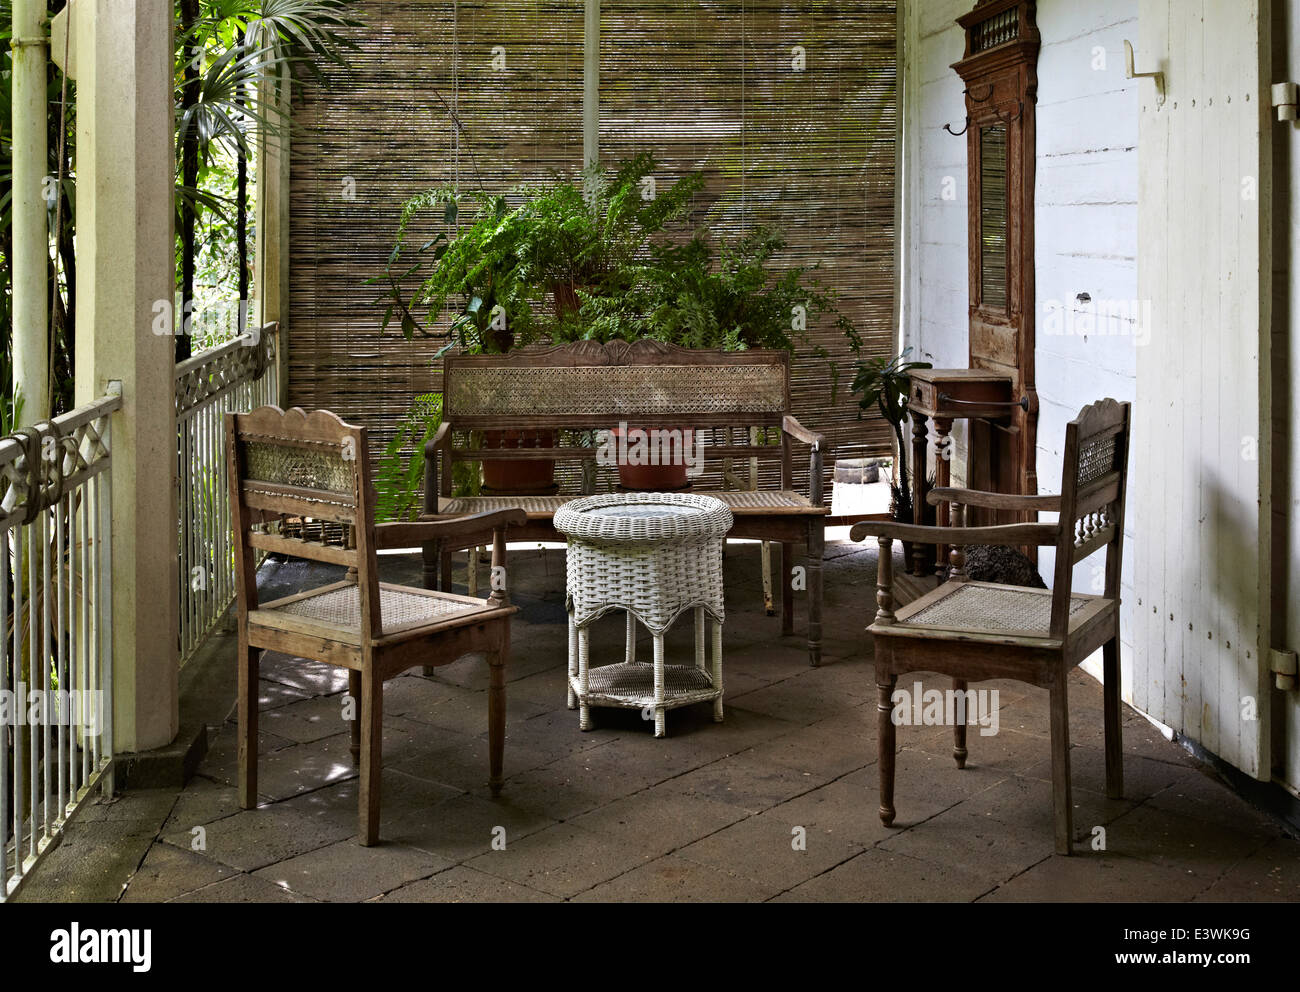 Table and chairs on veranda of la maison creole a french colonial house also known as eureka or house of 109 doors in moka